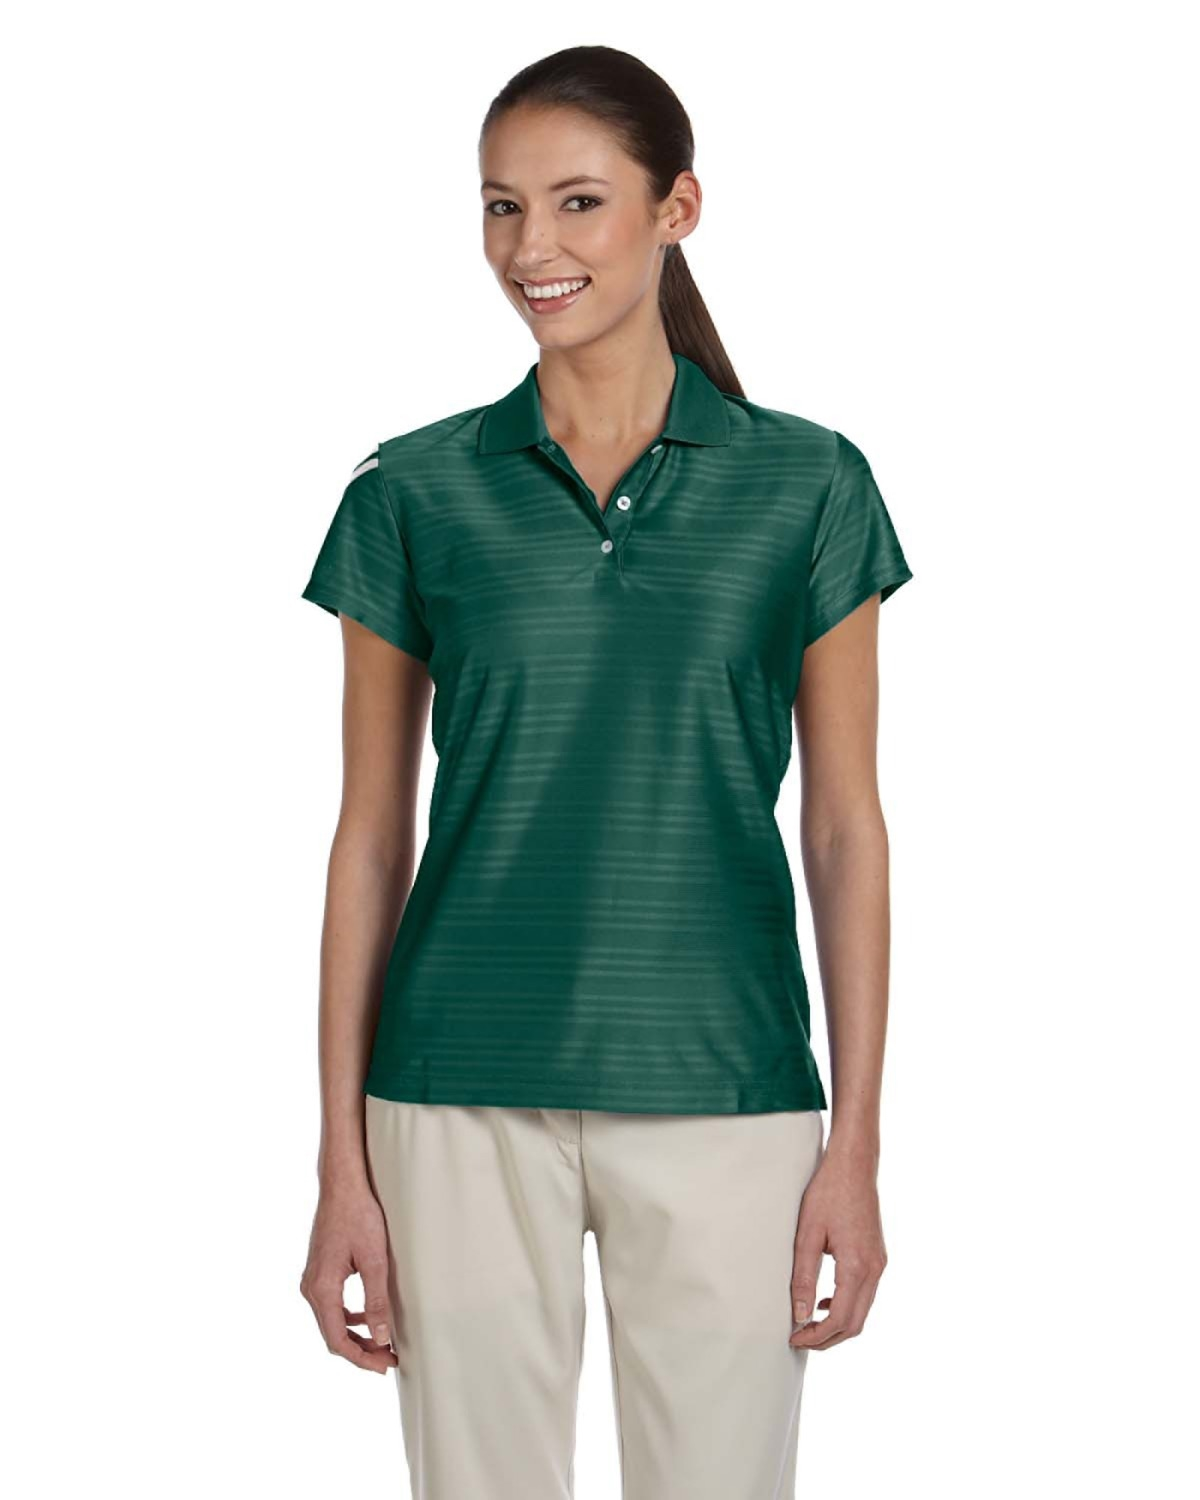 Adidas Golf A135 Womens ClimaCool Mesh Polo Shirts 5196648544